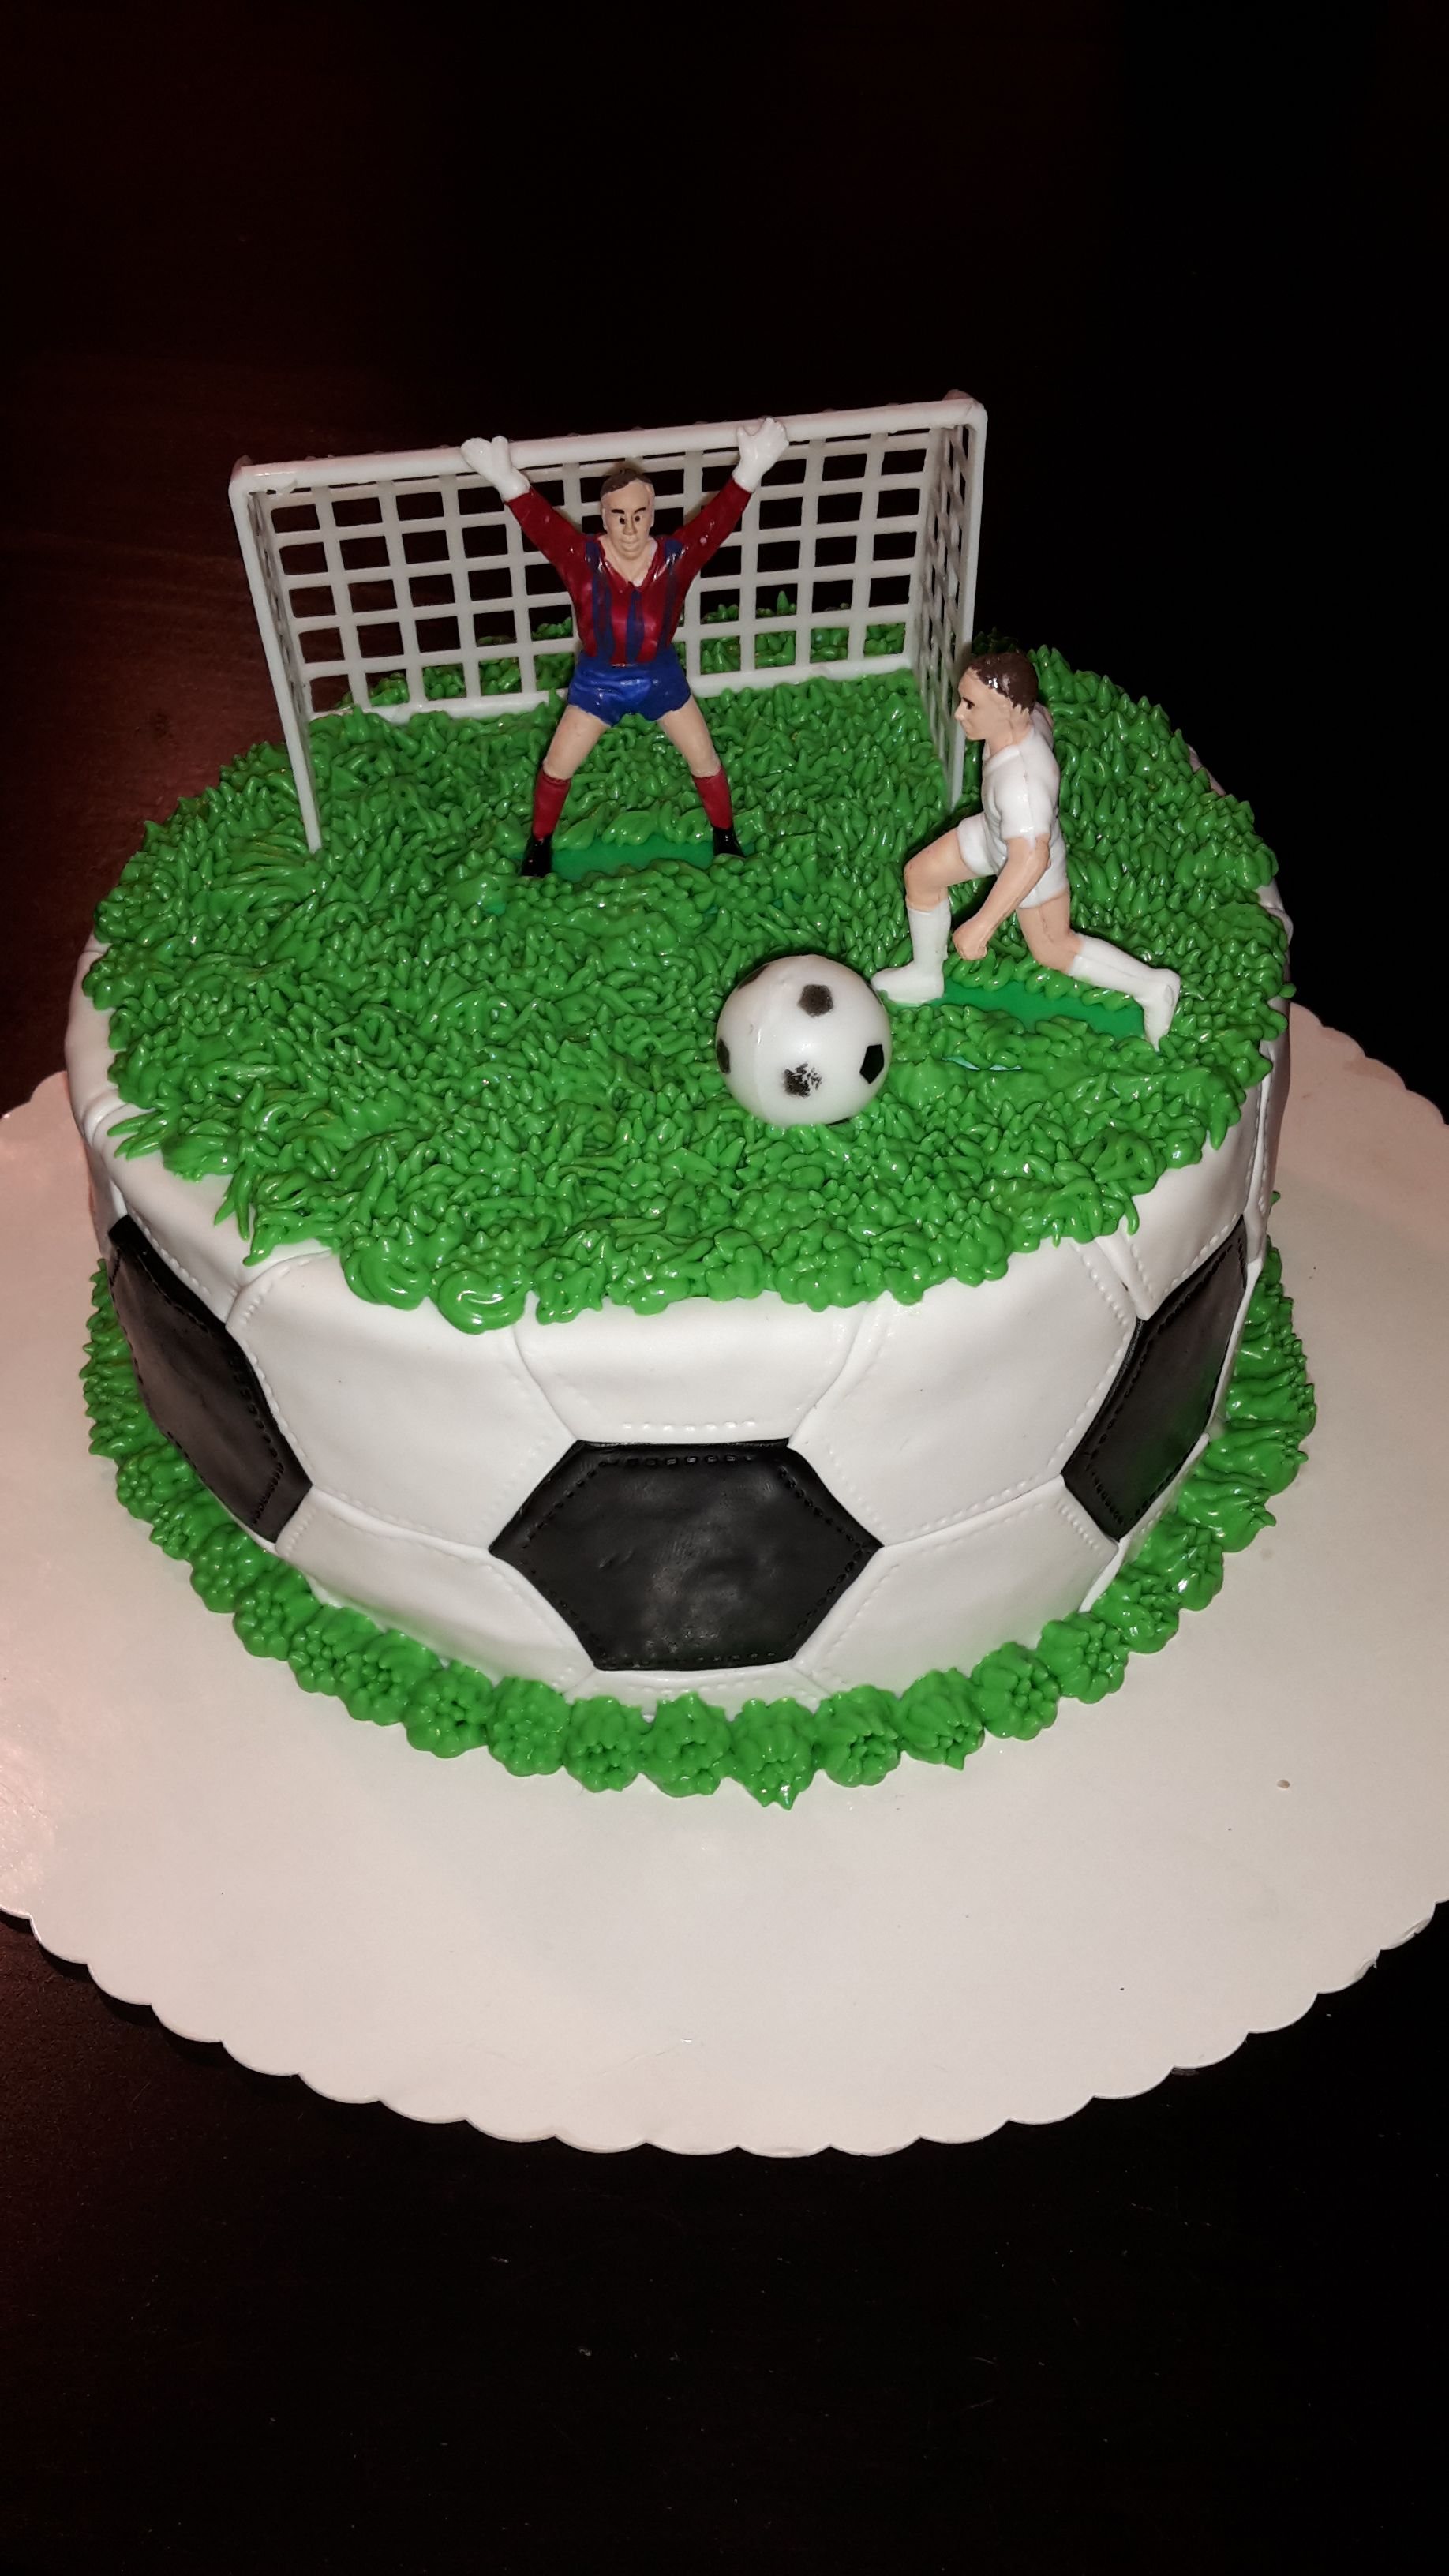 Soccer Football Cake Soccer Birthday Cakes Football Cake Football Birthday Cake